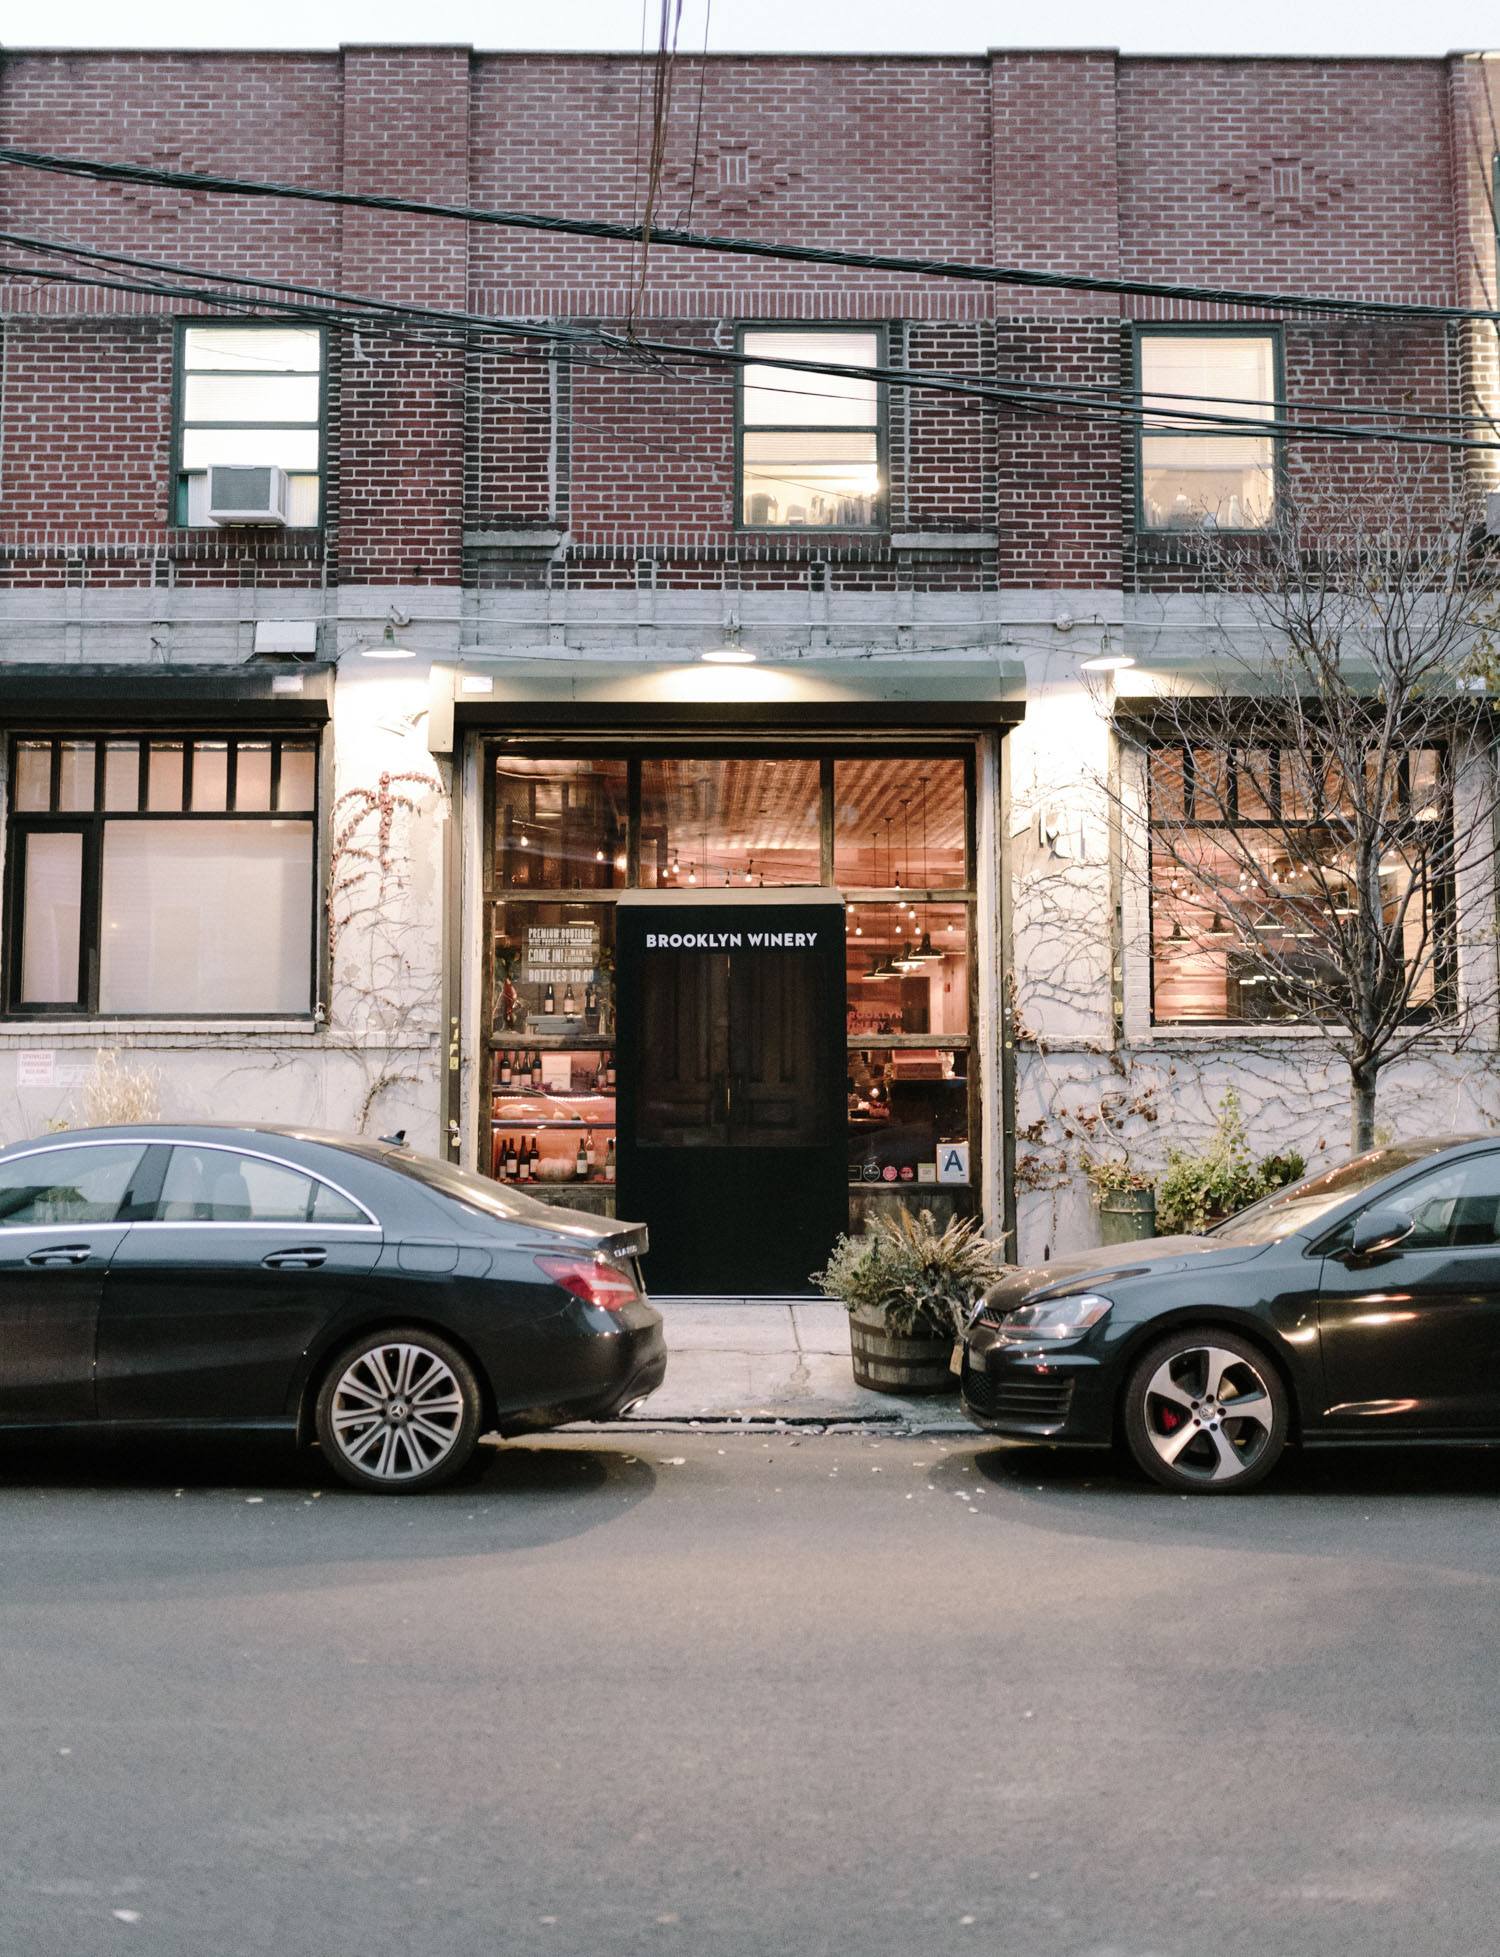 The facade of Brooklyn Winery in winter, at twilight in New York City